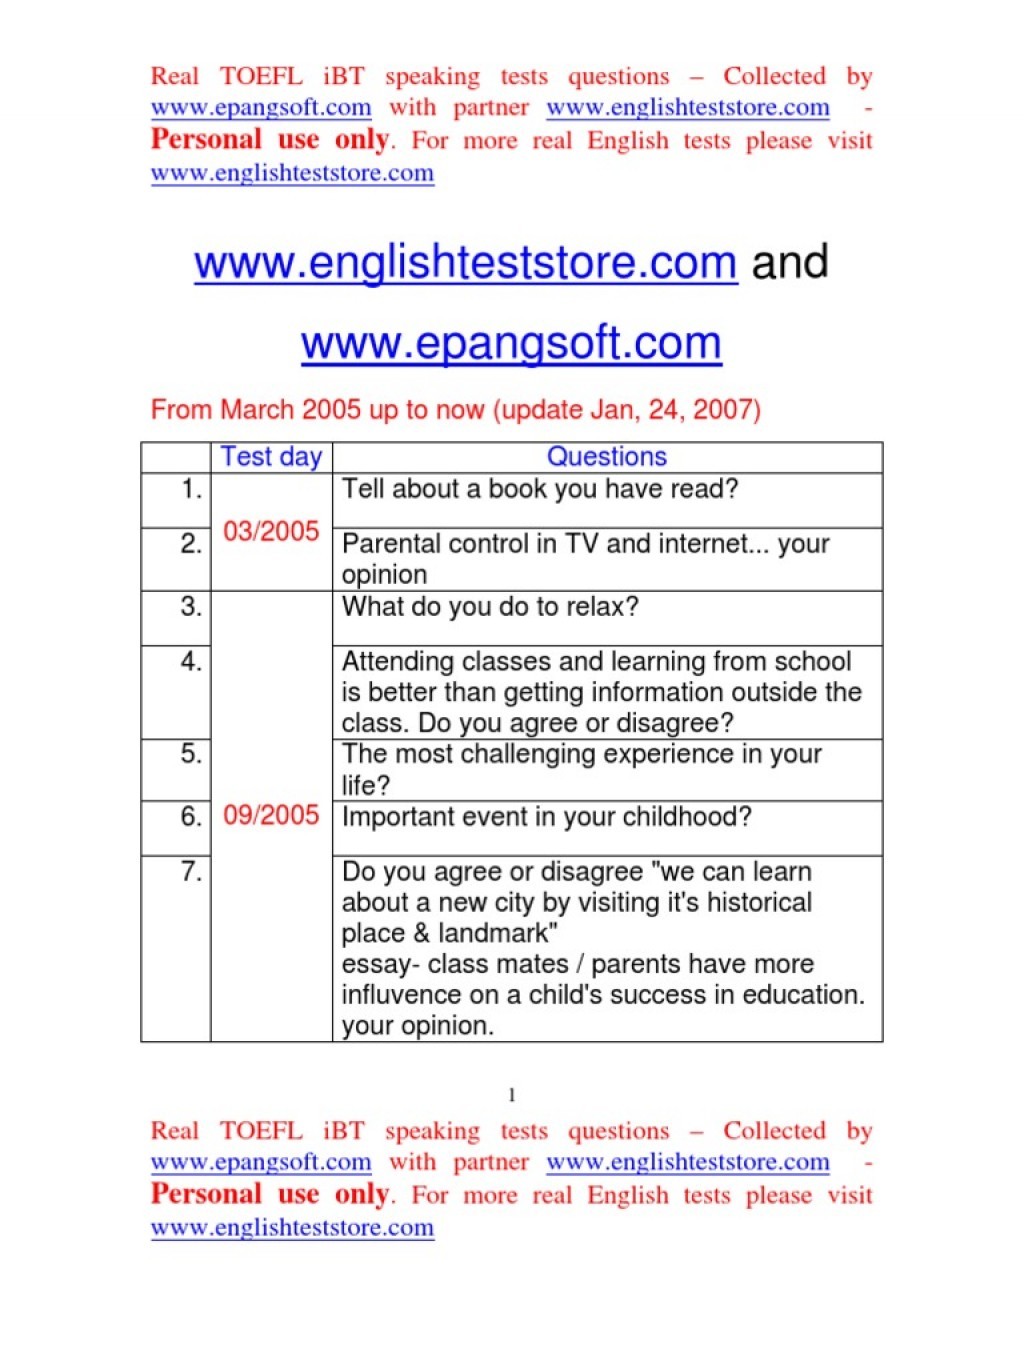 009 Essay Example Toefl Topic Preparat Oacute Rio Nashville Docshare Tips Real Ibt Speaking Test Questions From March  58517c54b6d87f49628 Taking For Topics Striking 2015Large